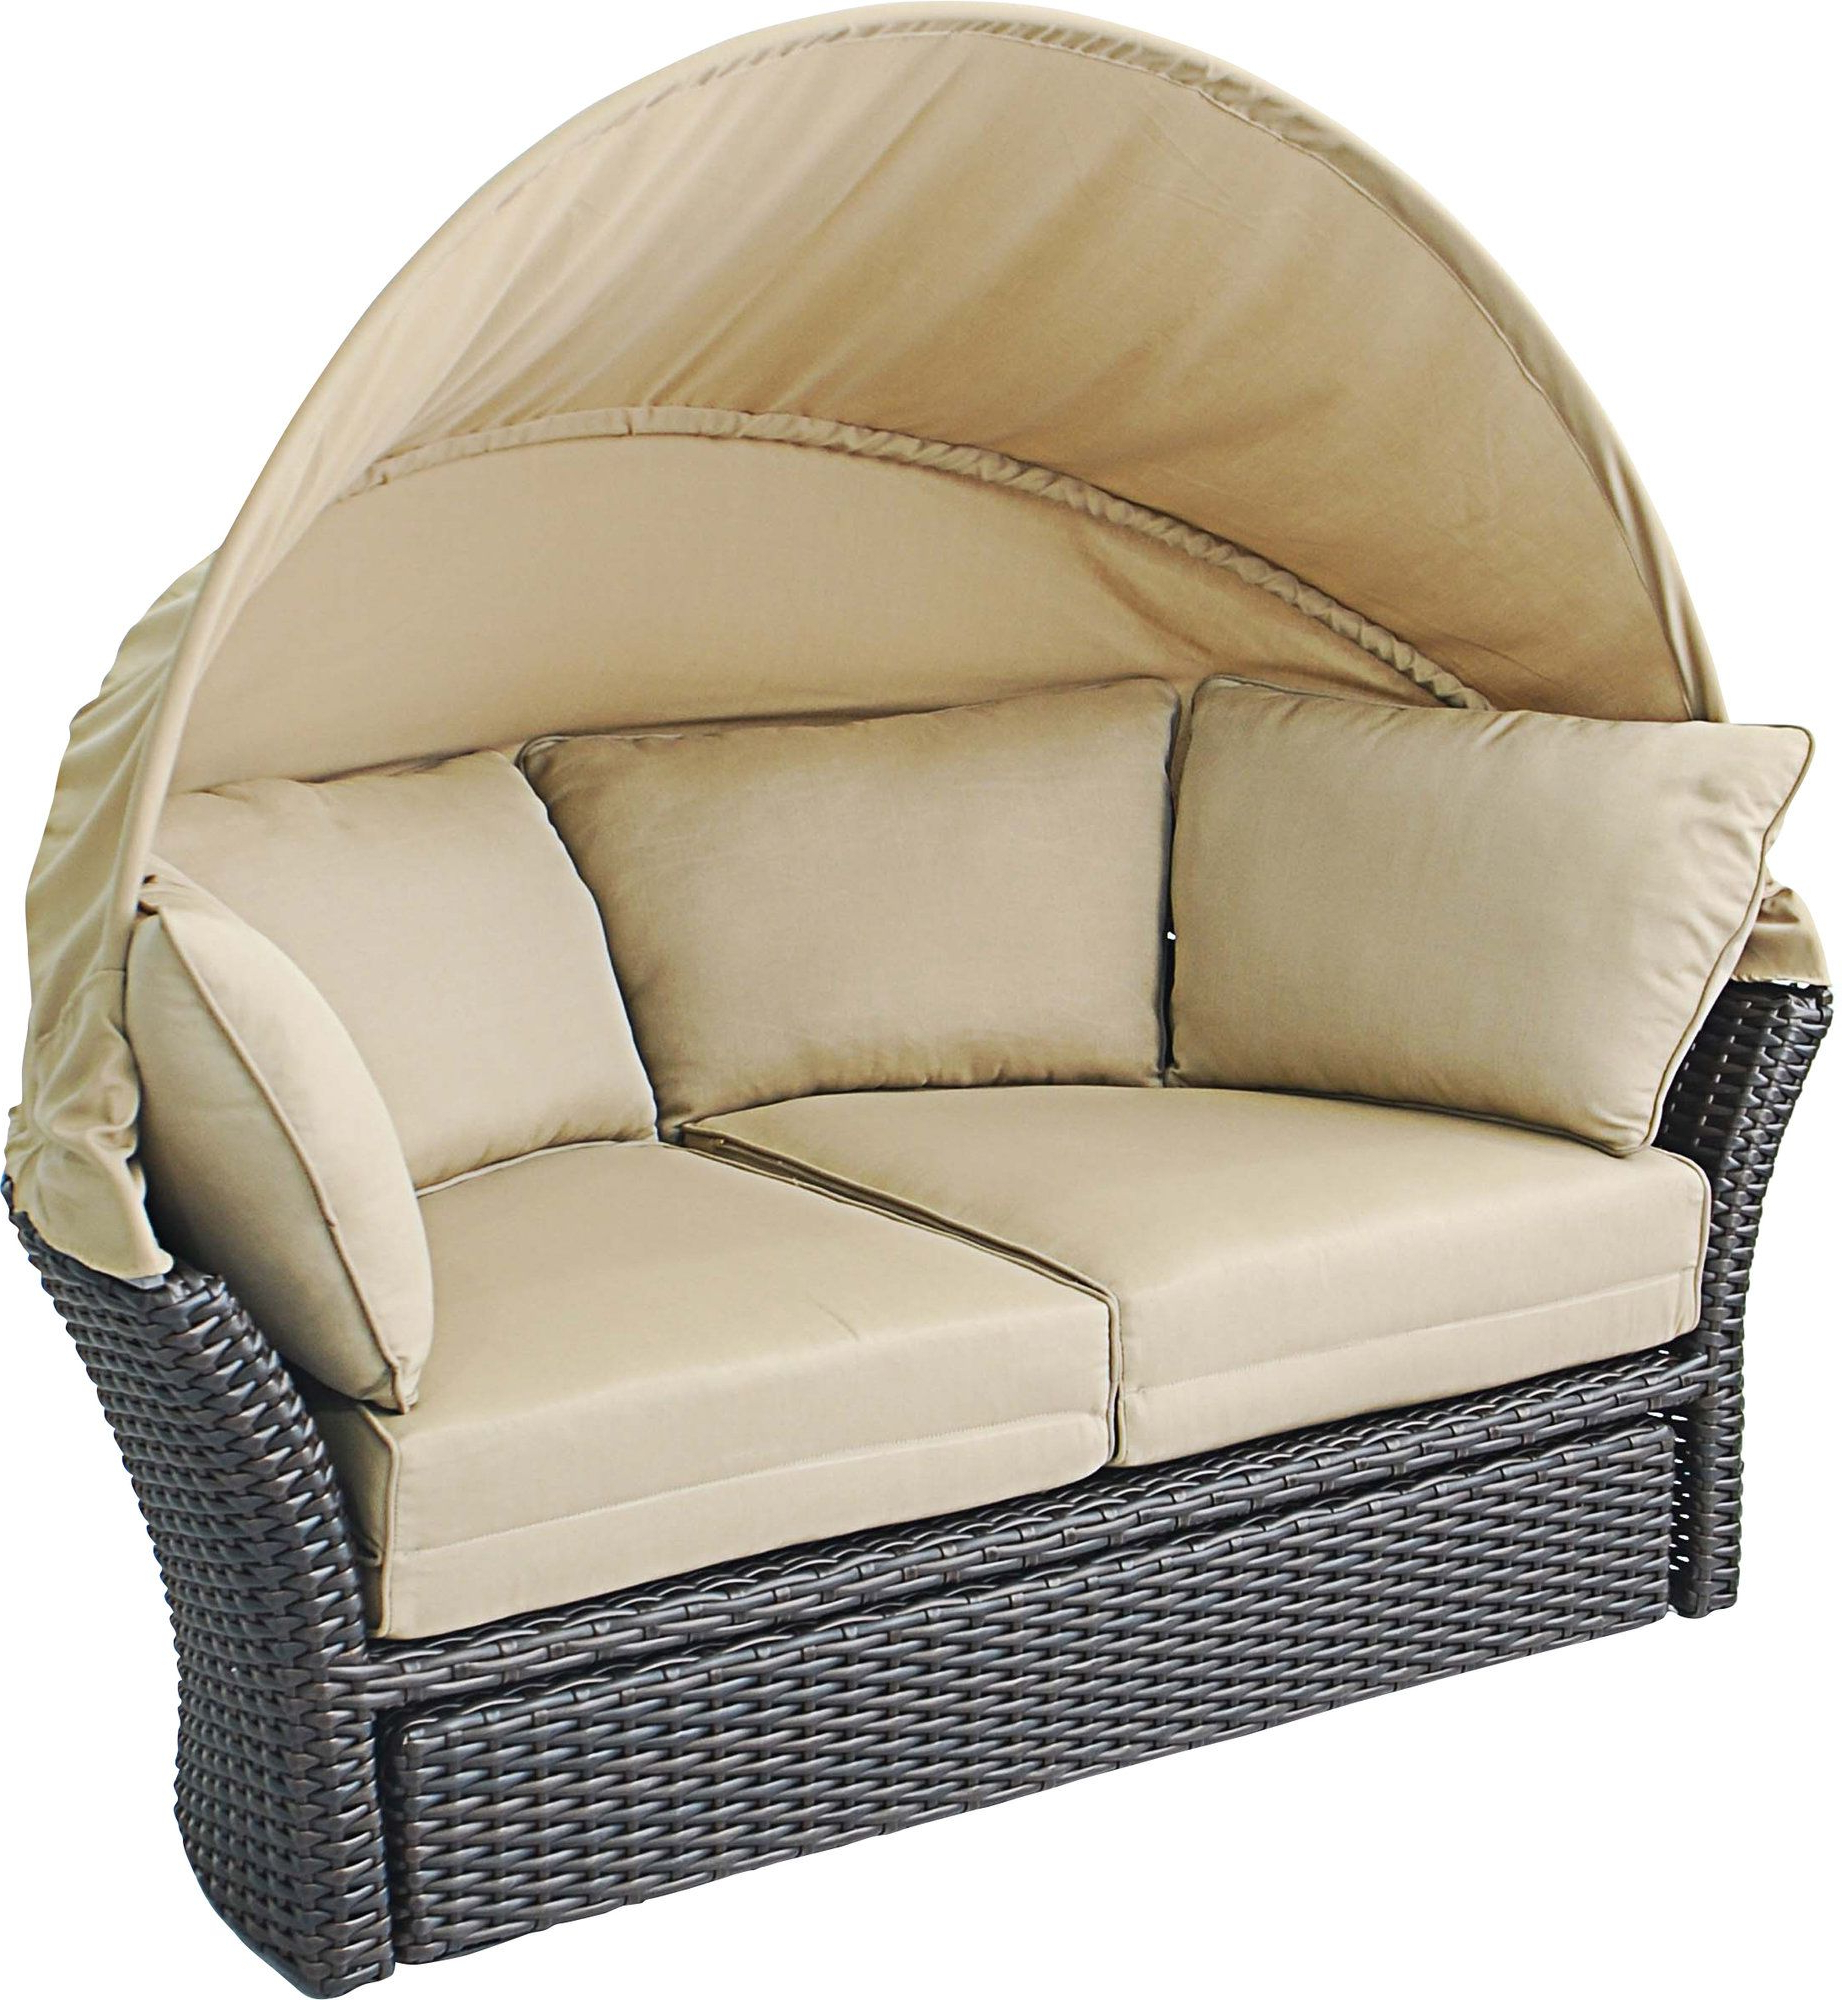 Most Recently Released Brentwood Patio Daybeds With Cushions Inside Seagle Daybed With Cushions (View 14 of 25)